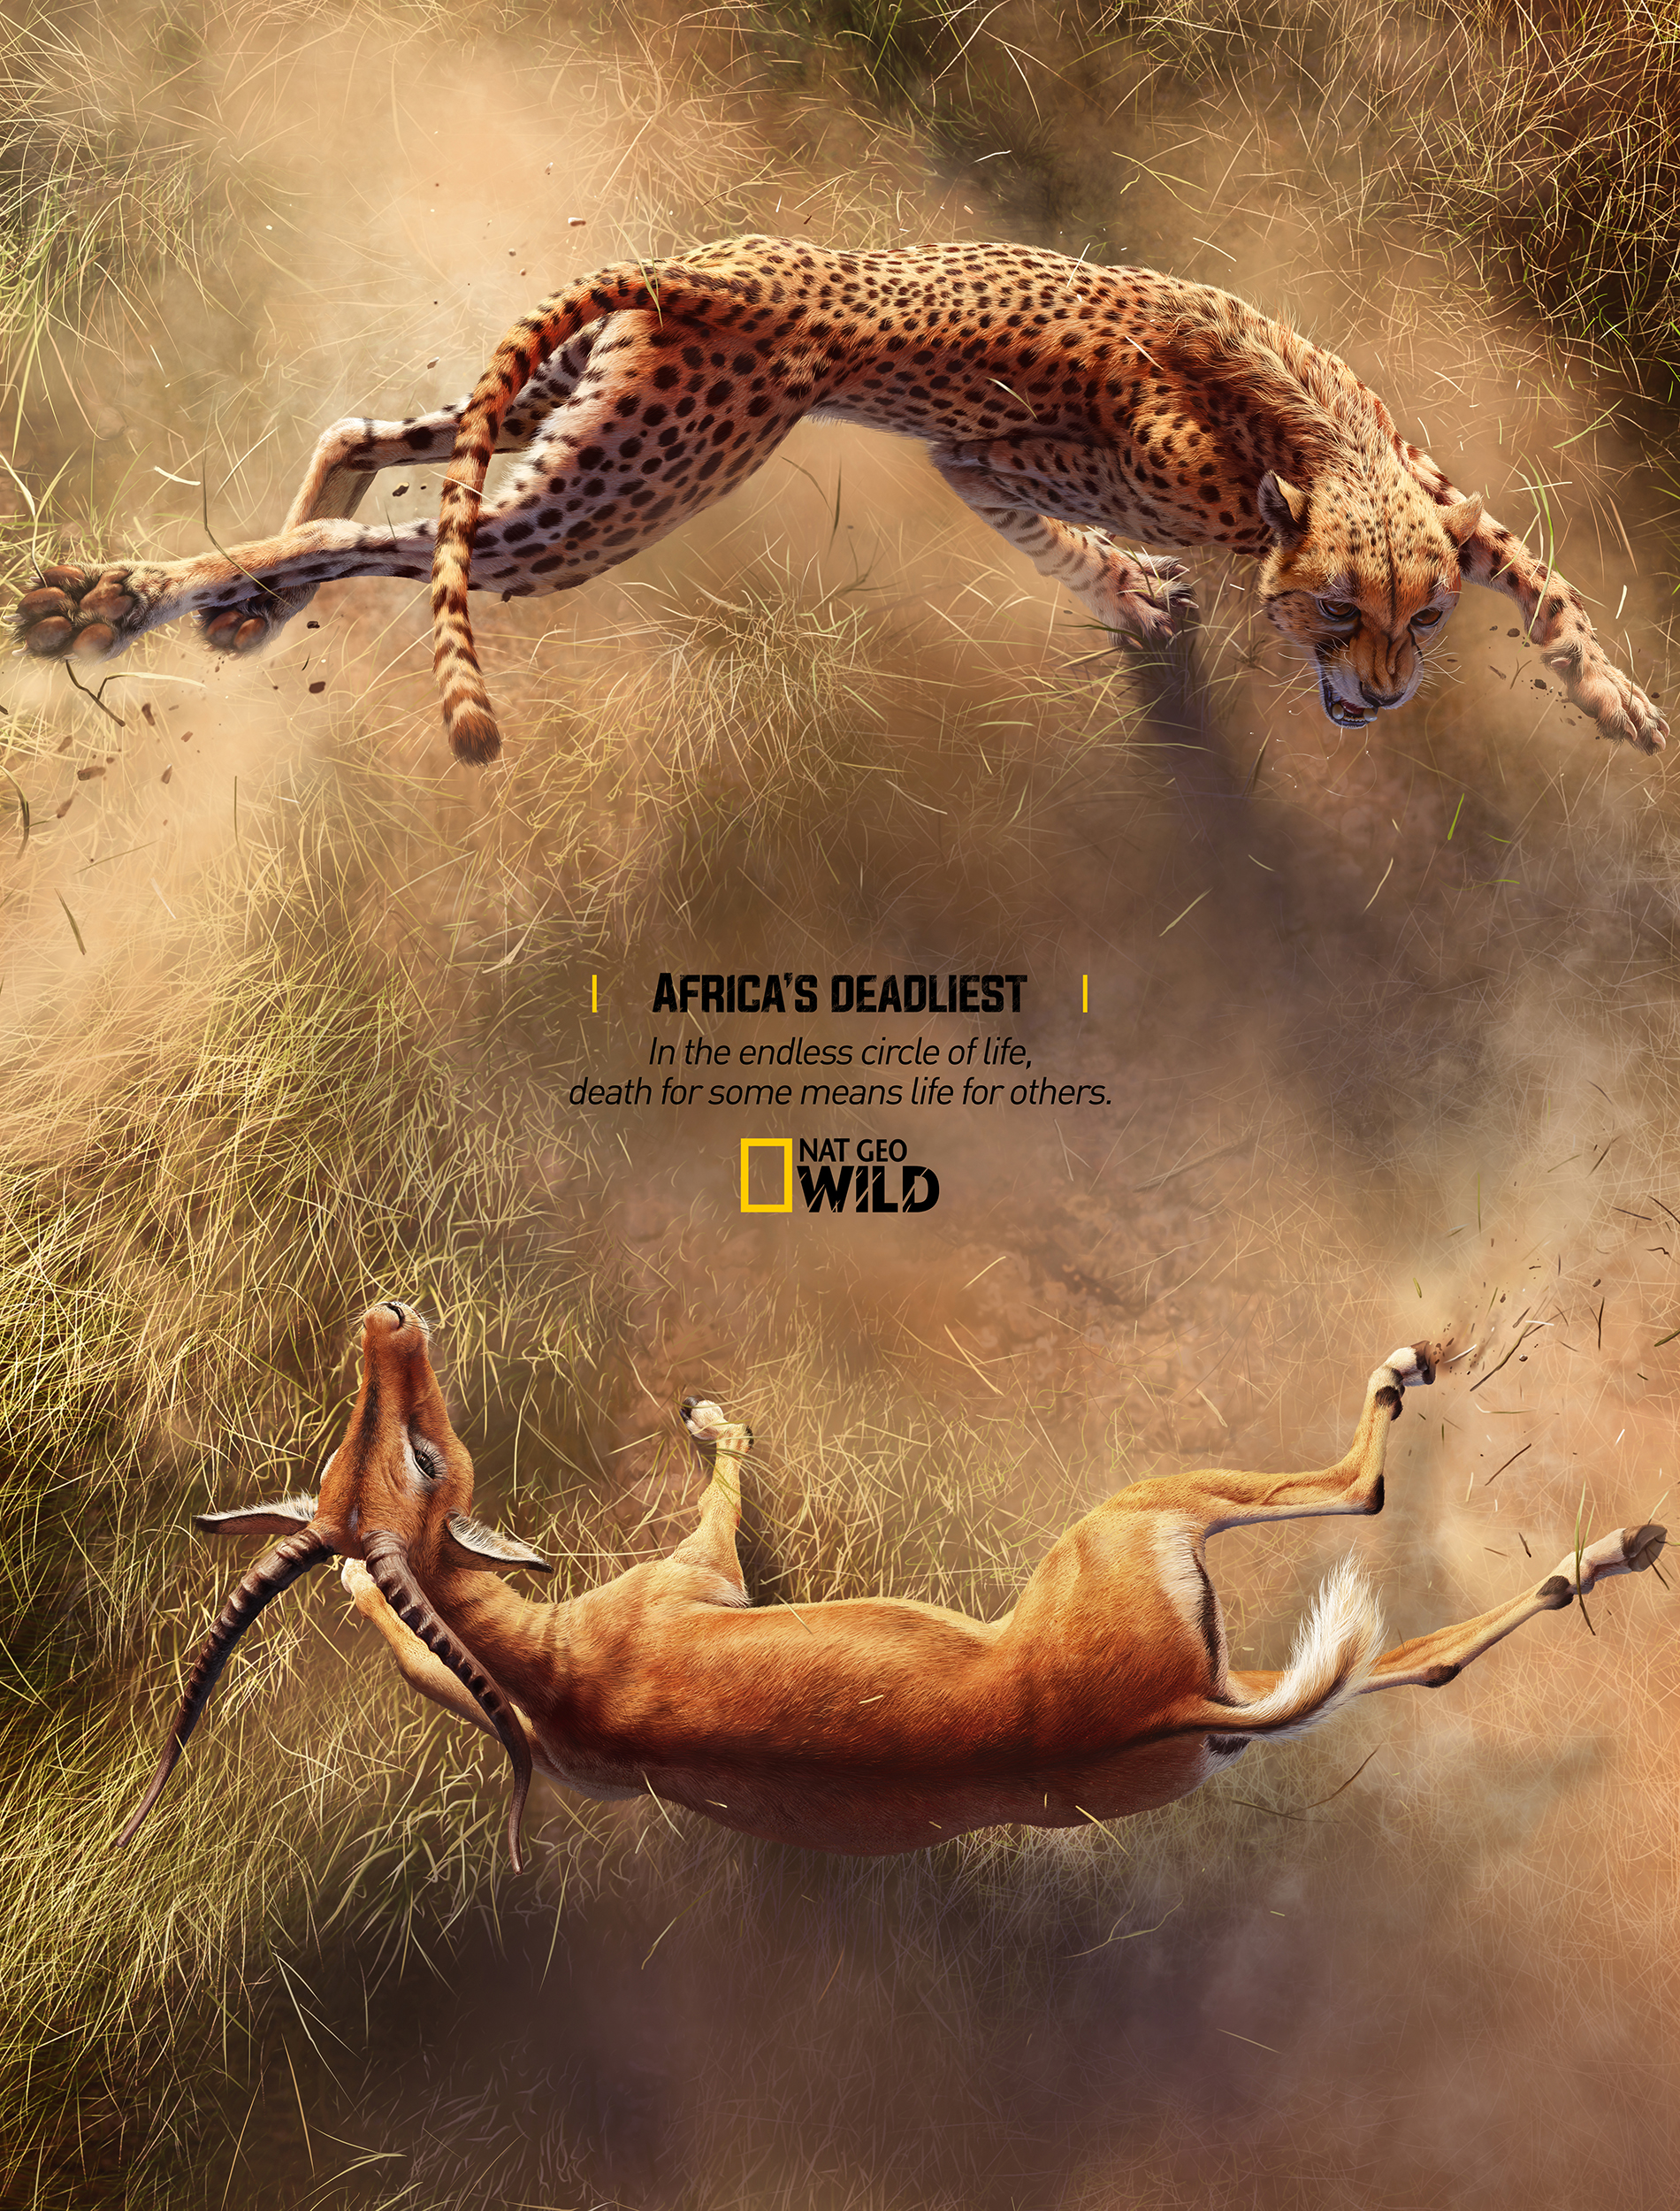 e83c724839 Adeevee   Only selected creativity - National Geographic: Africa's ...